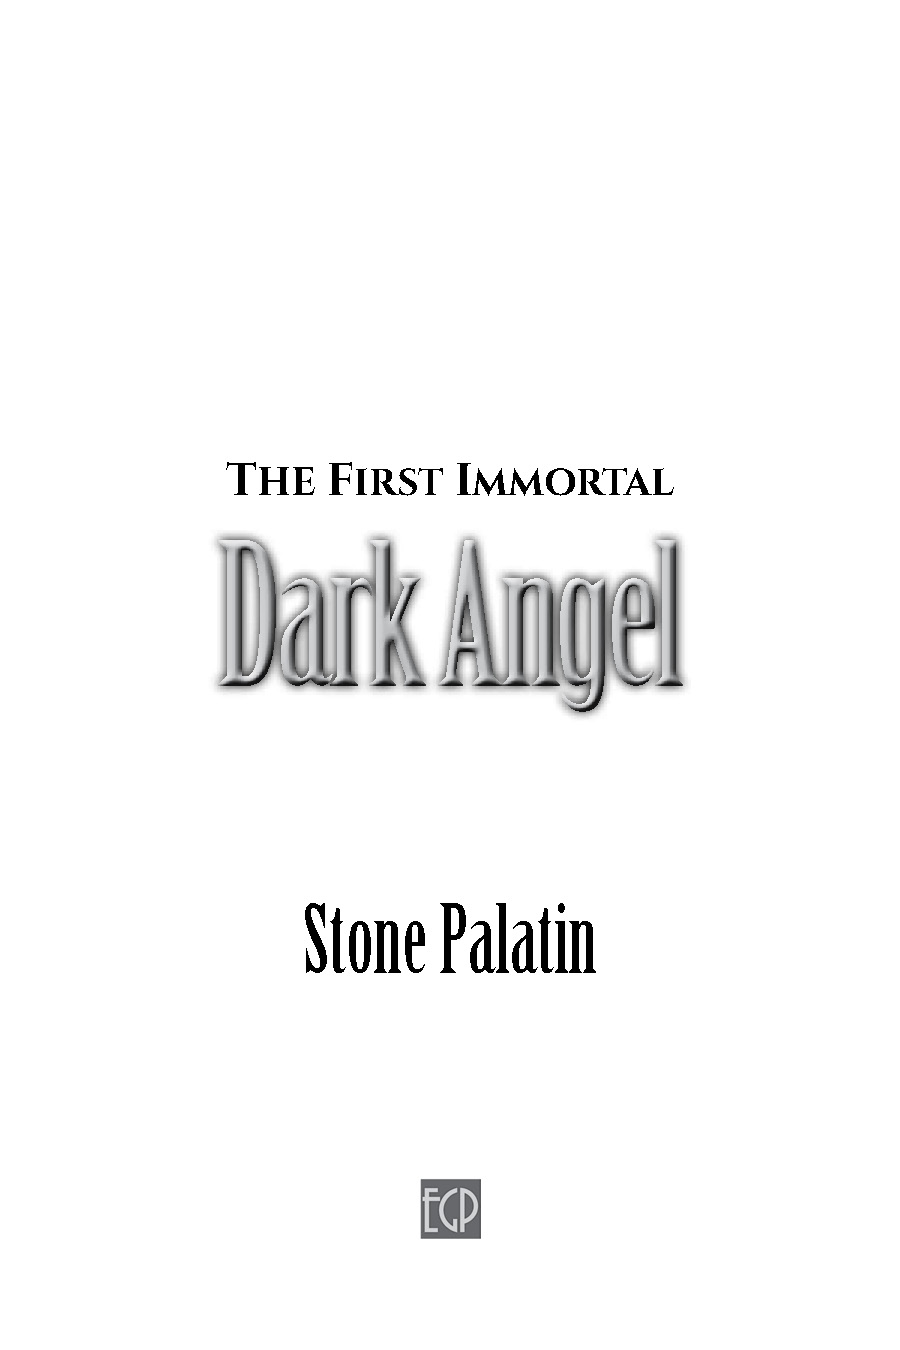 DarkAngel_FINAL_PUB_p3.jpg